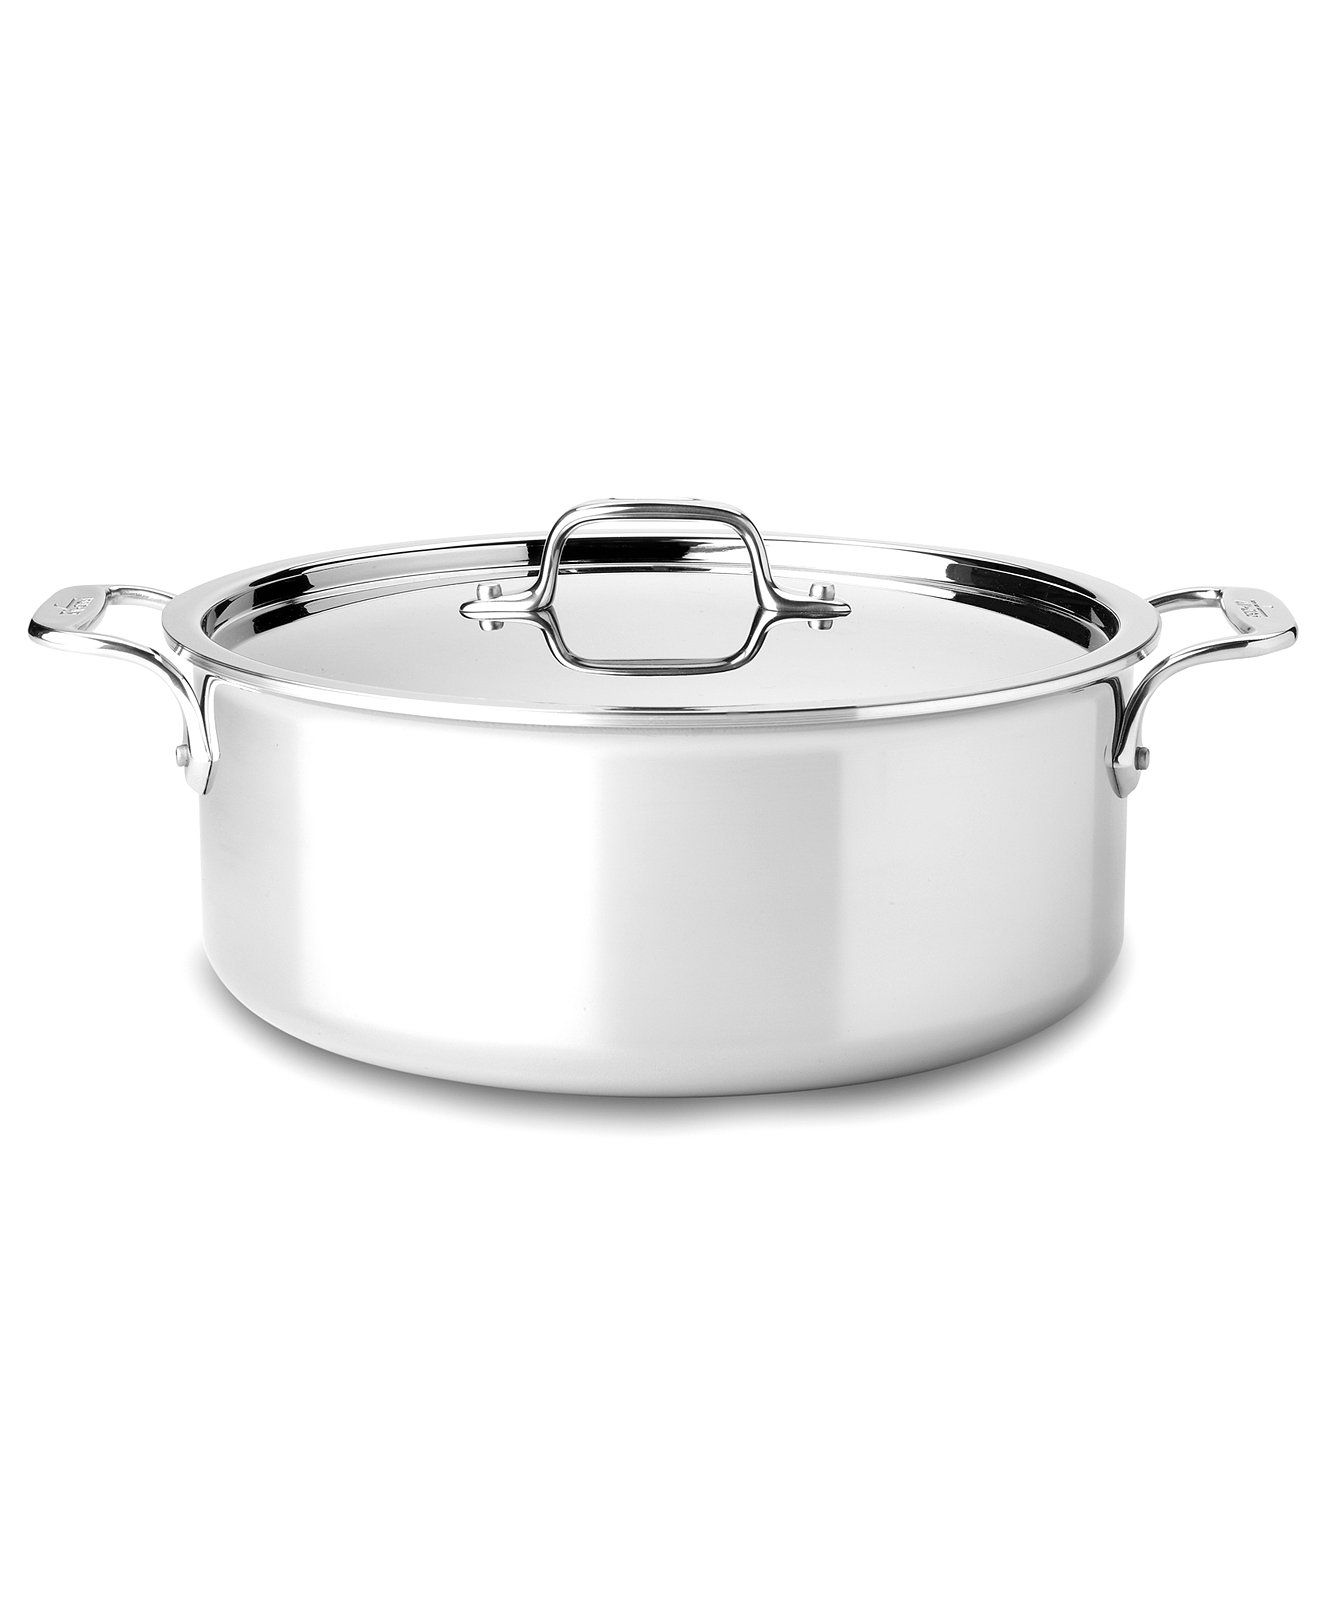 All-Clad Stainless Steel 6 Qt. Covered Stockpot | Stainless steel ...